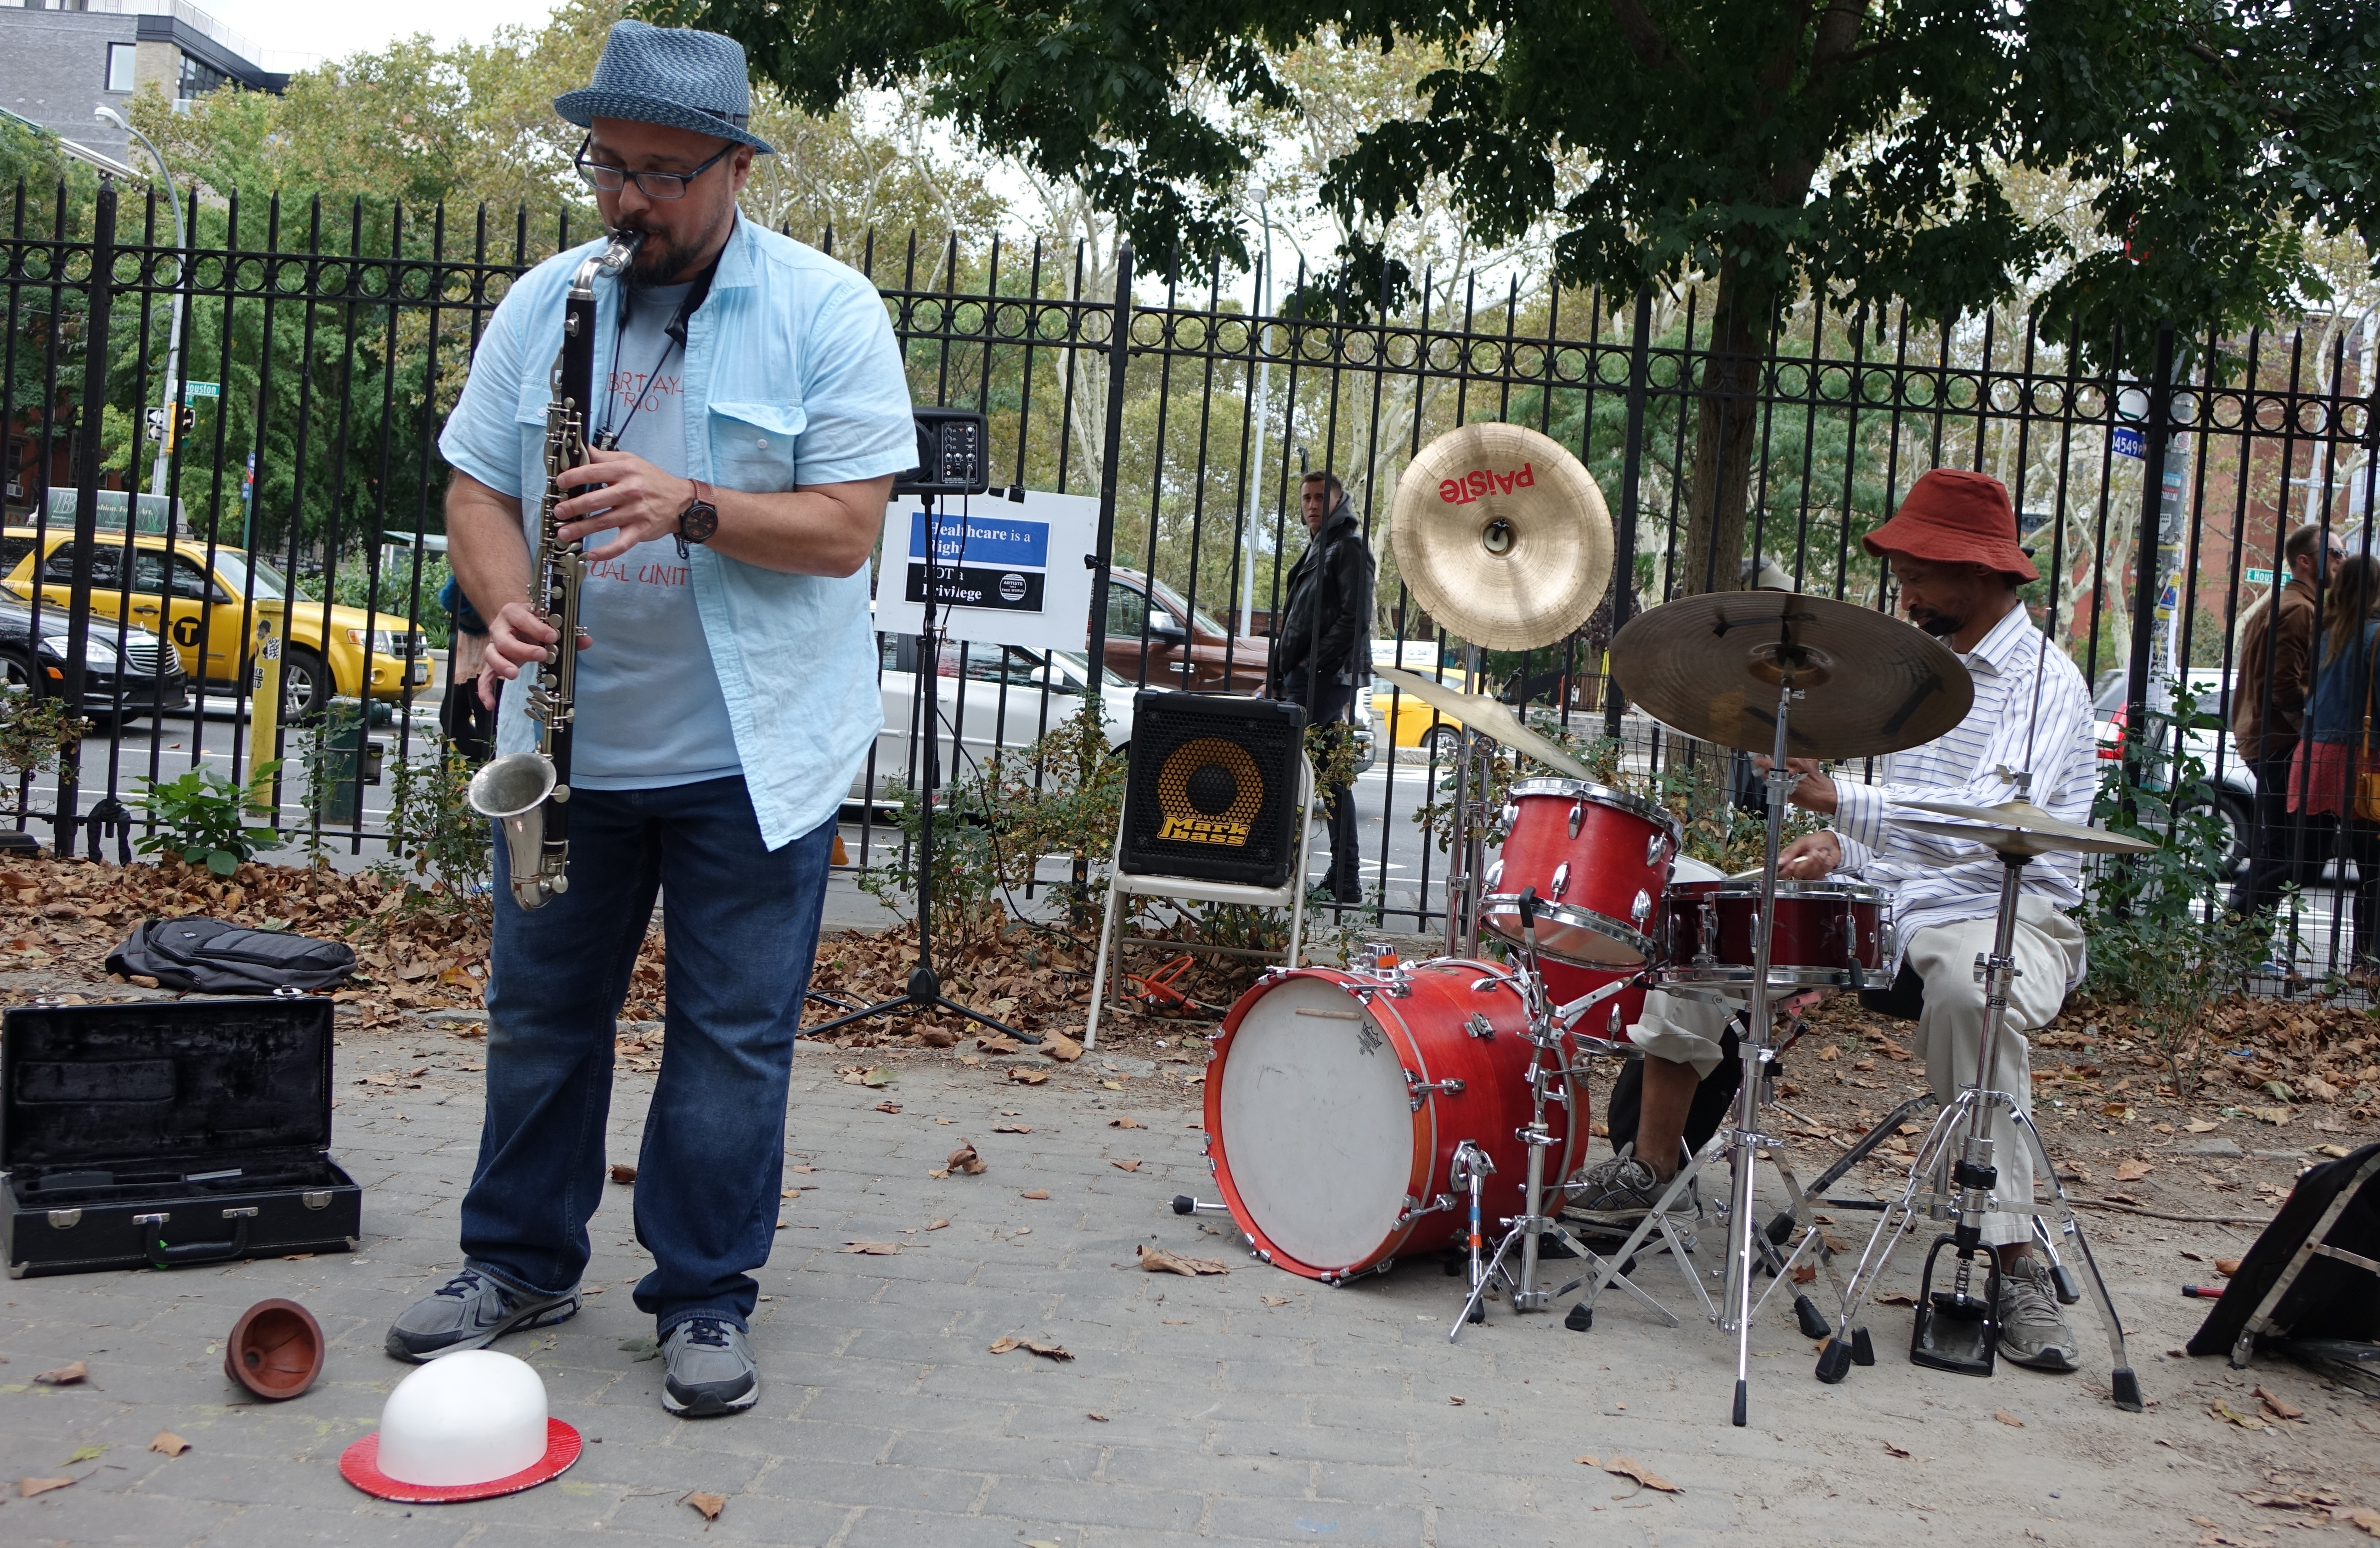 Matt Lavelle and Reggie Sylvester at First Street Green, NYC in September 2017